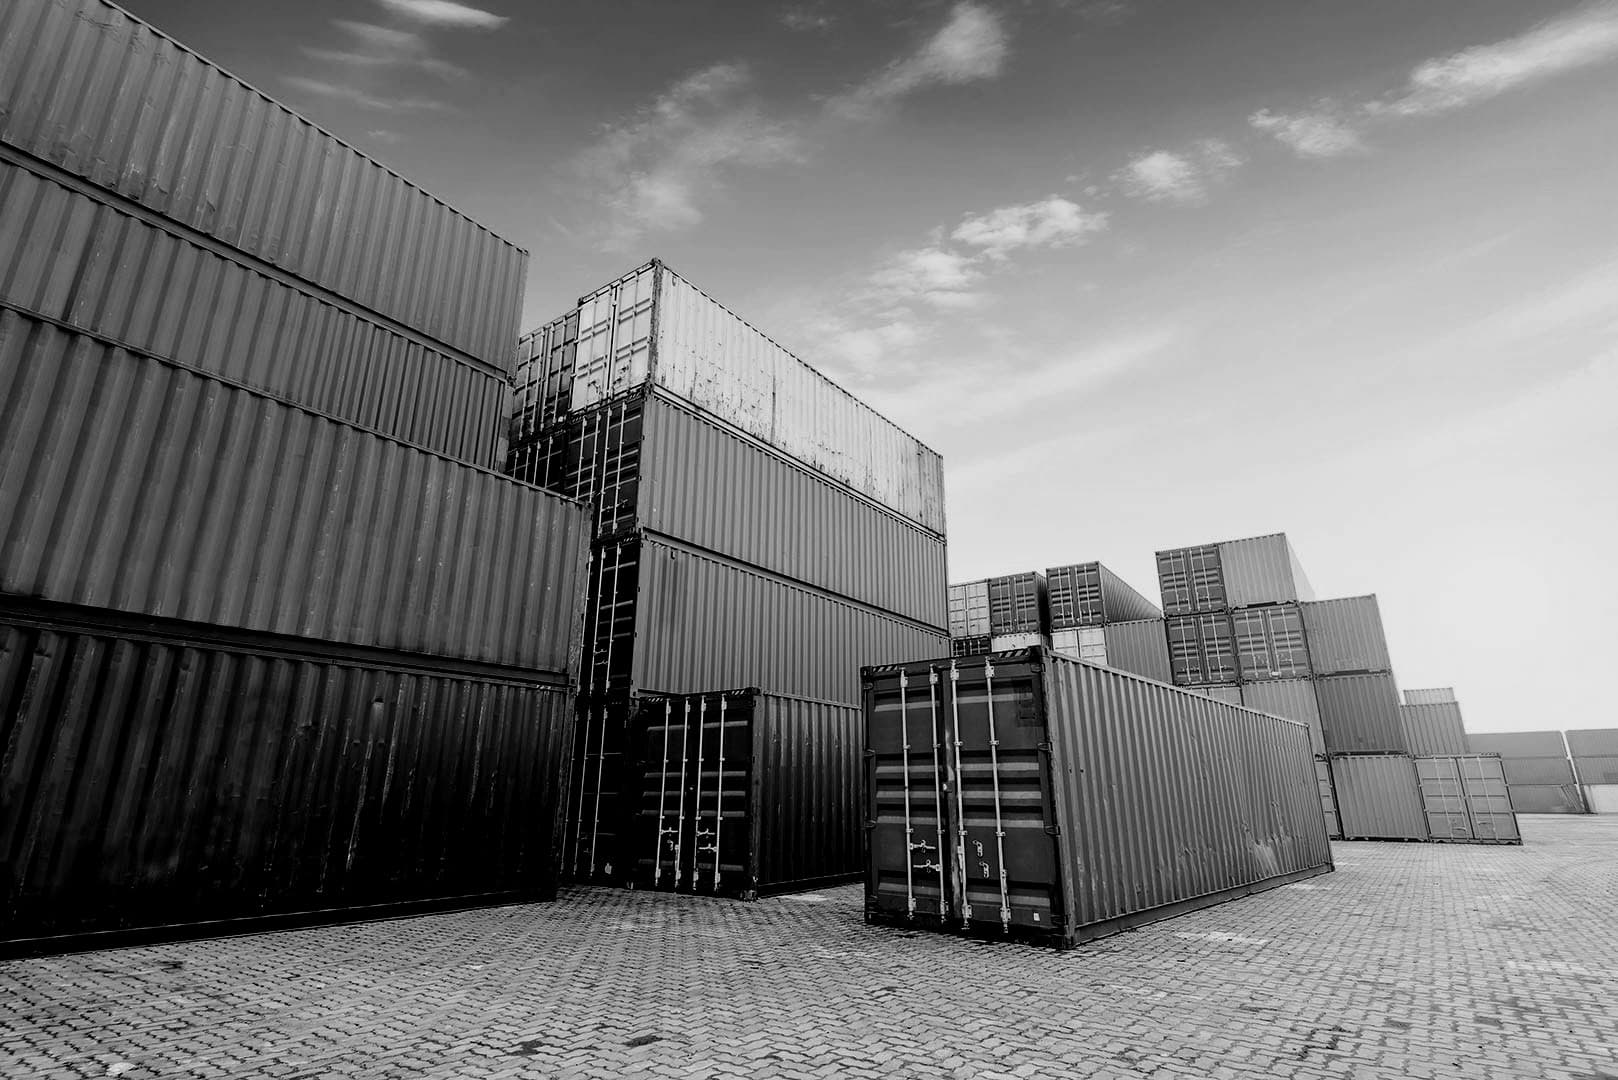 stacked shipping containers and large machinery in an industrial yard